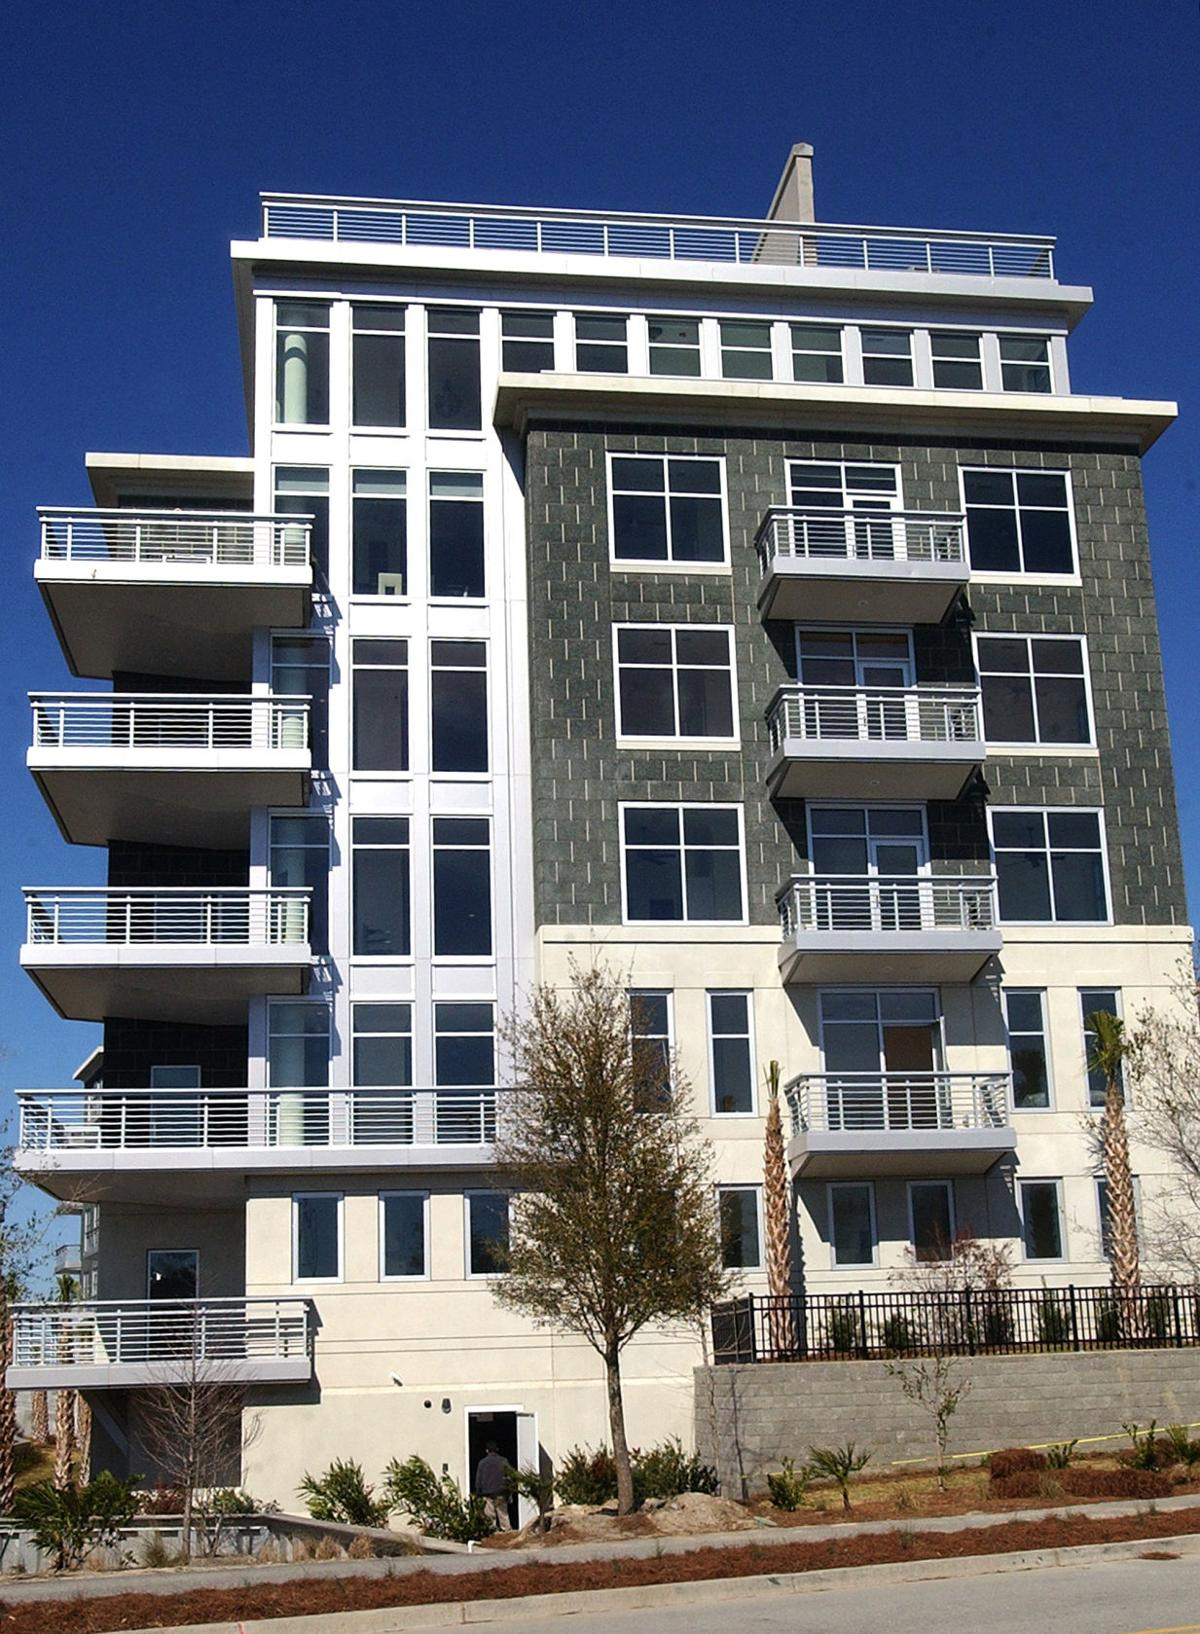 Foreclosure finalized for The Tides condos in Mt. Pleasant